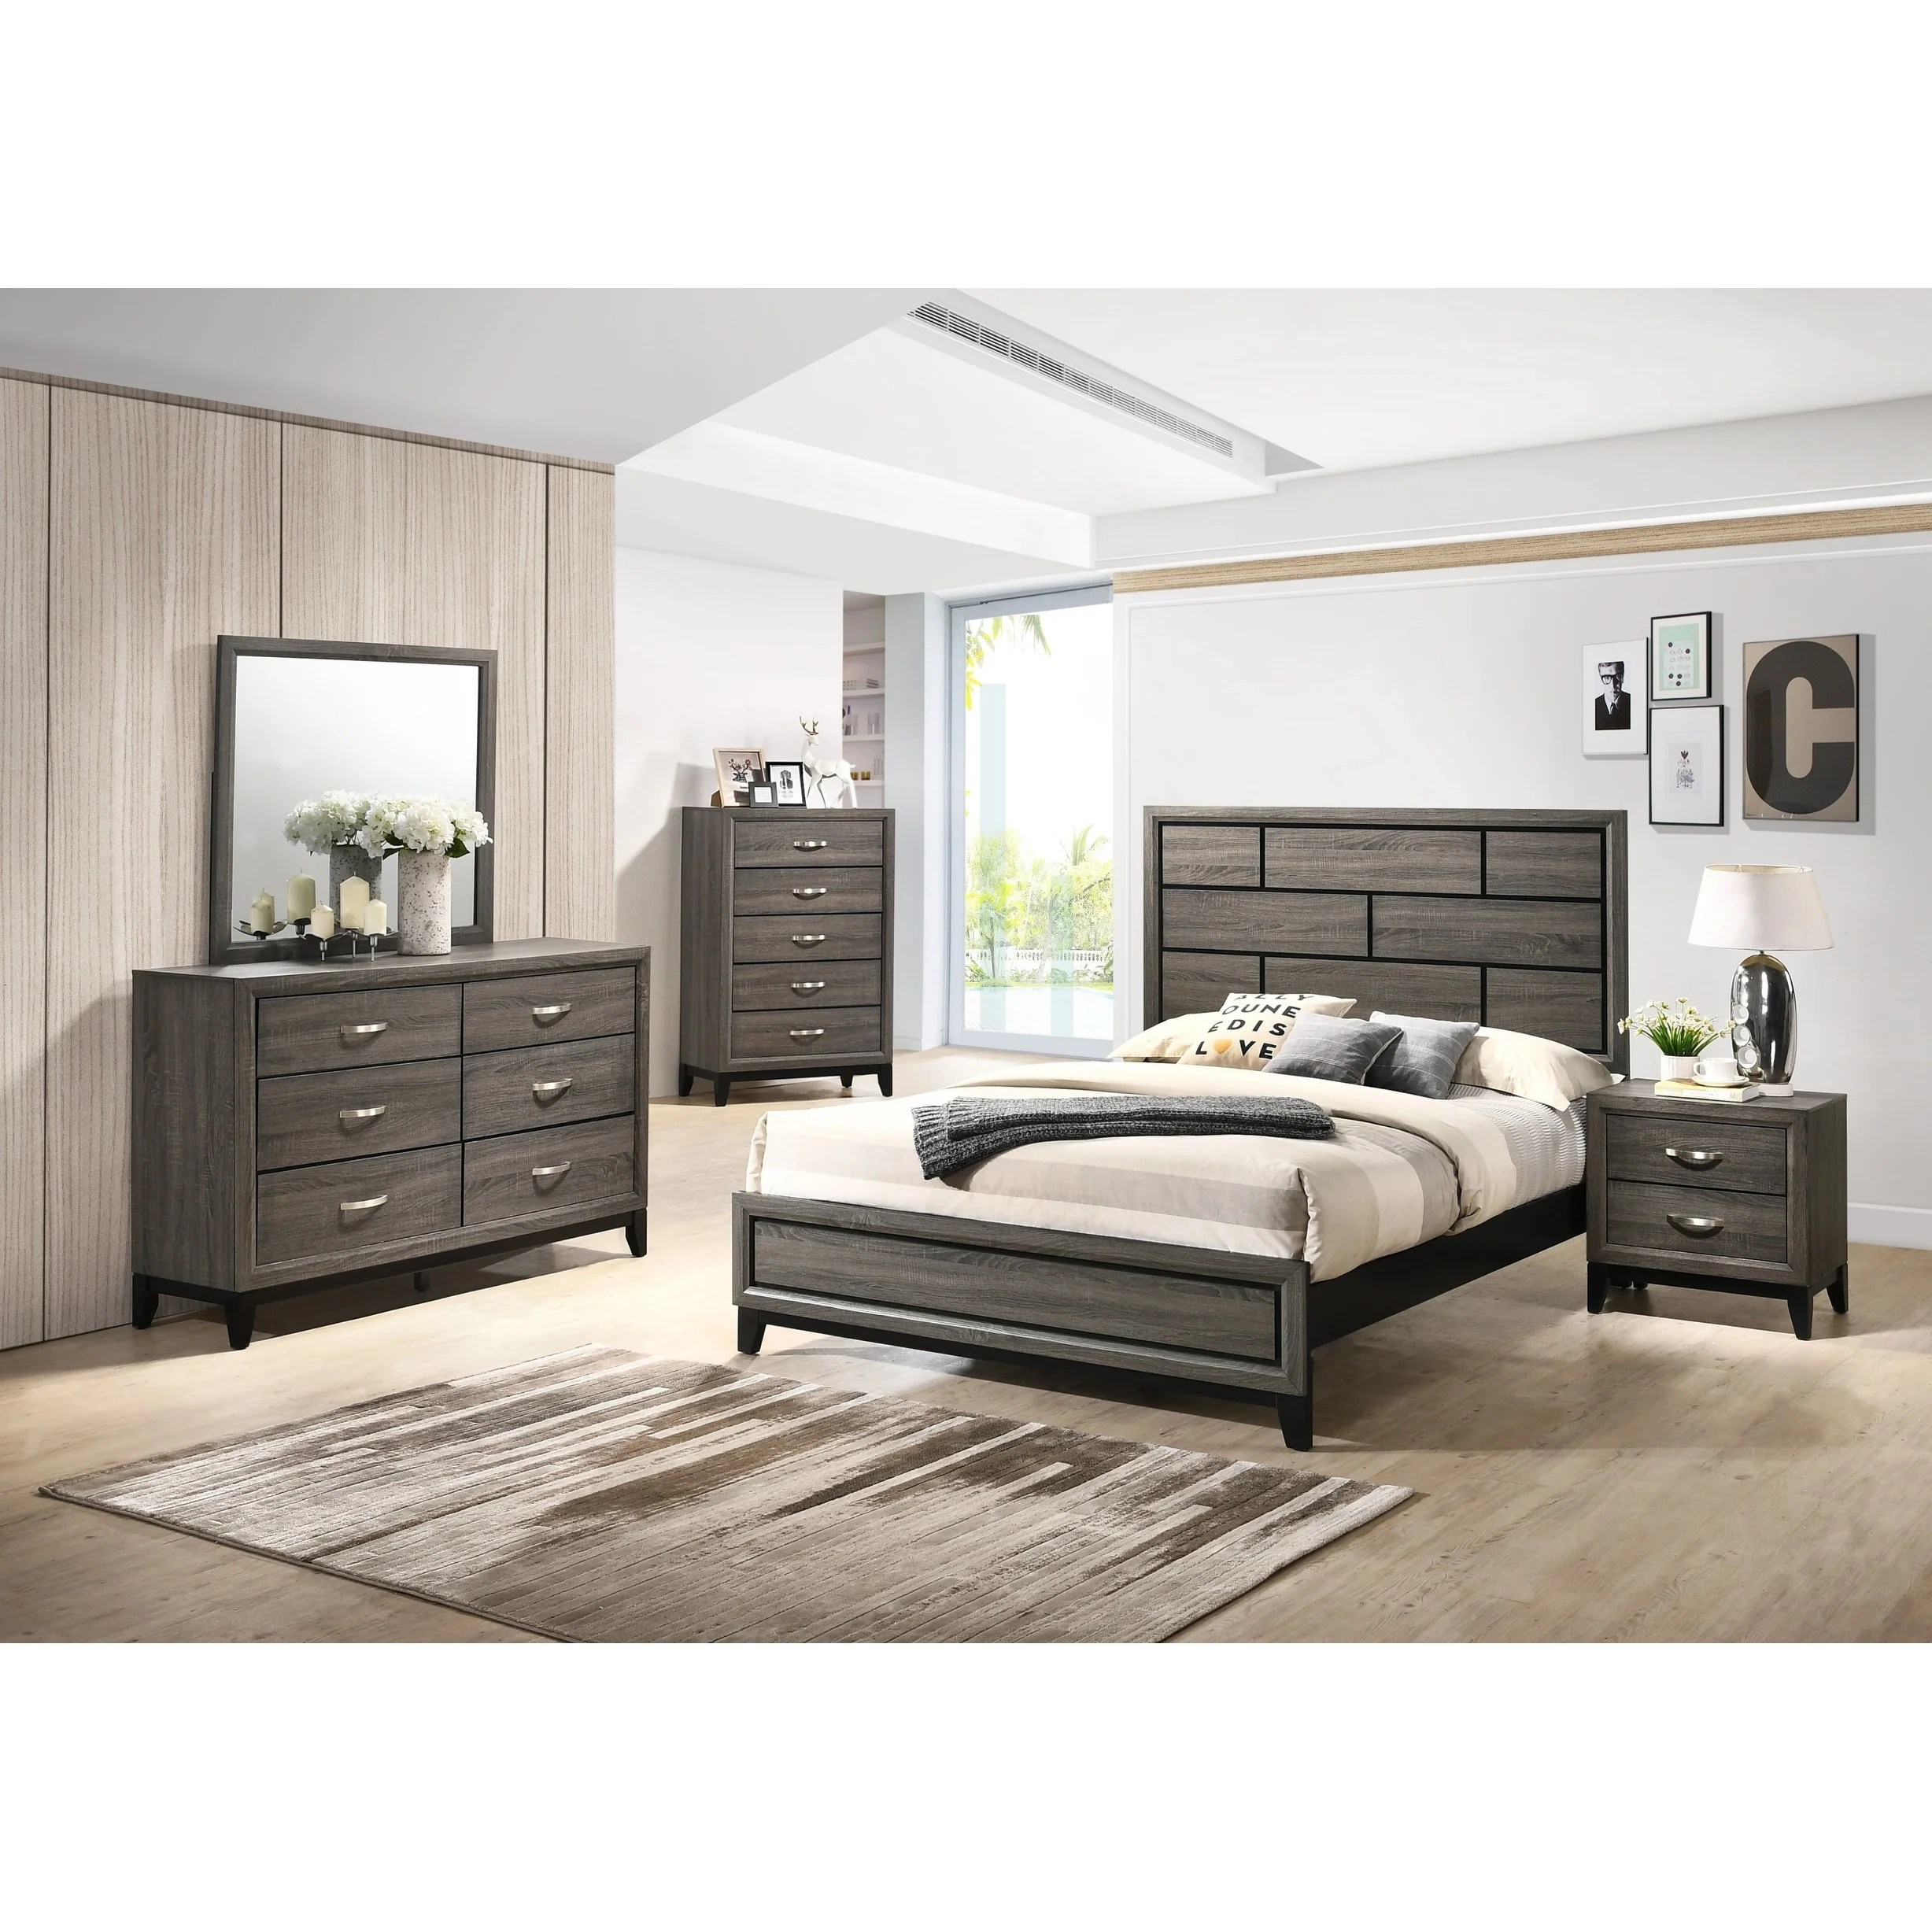 stout panel bedroom set with bed dresser mirror night stand chest